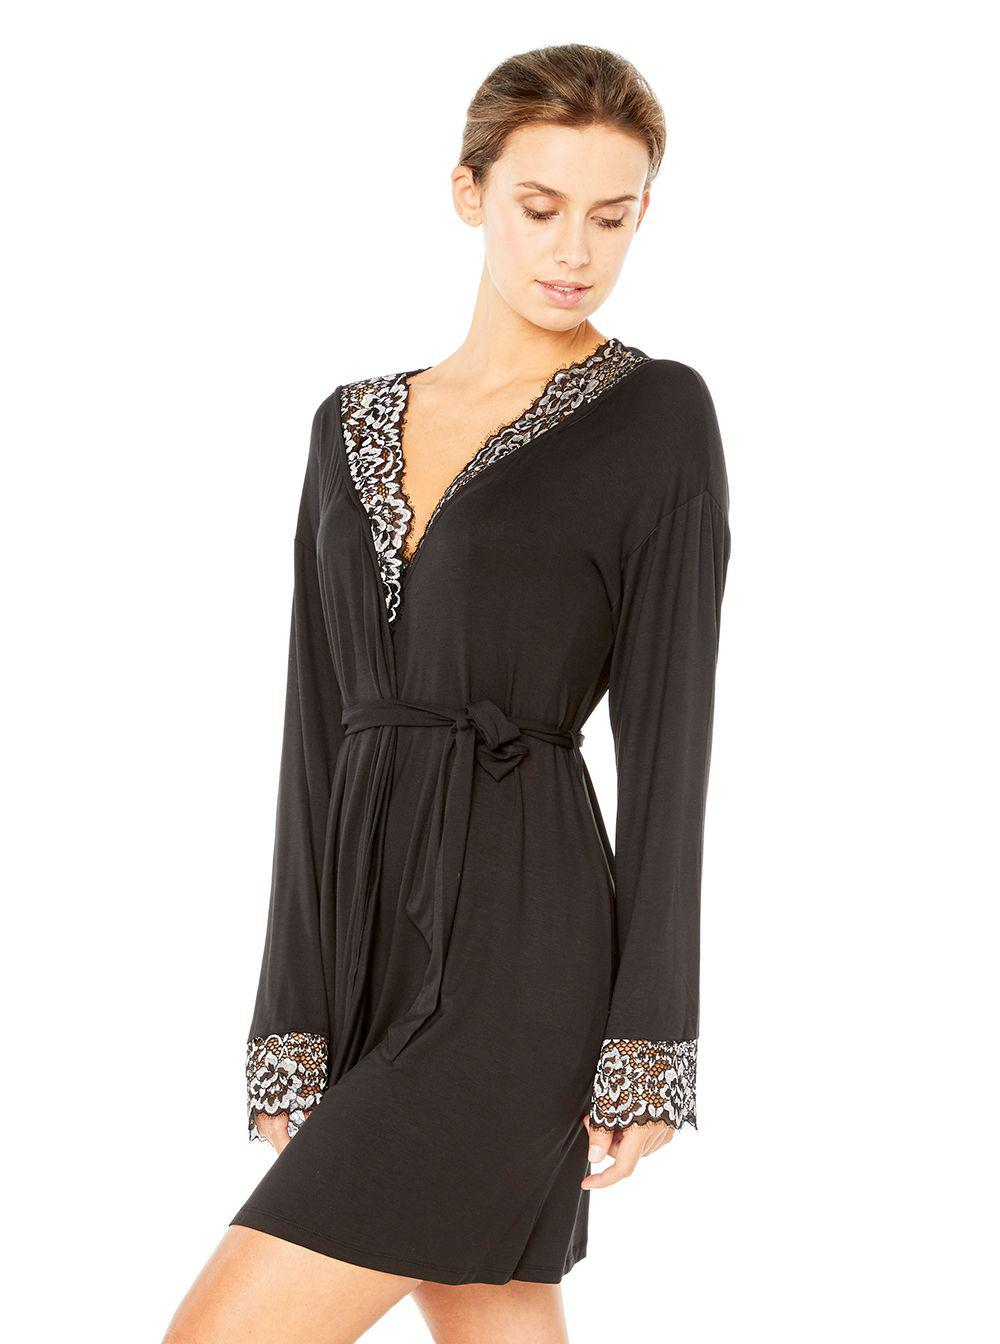 Lyst cosabella pret a porter sleepwear robe in black for Pret a porter uk